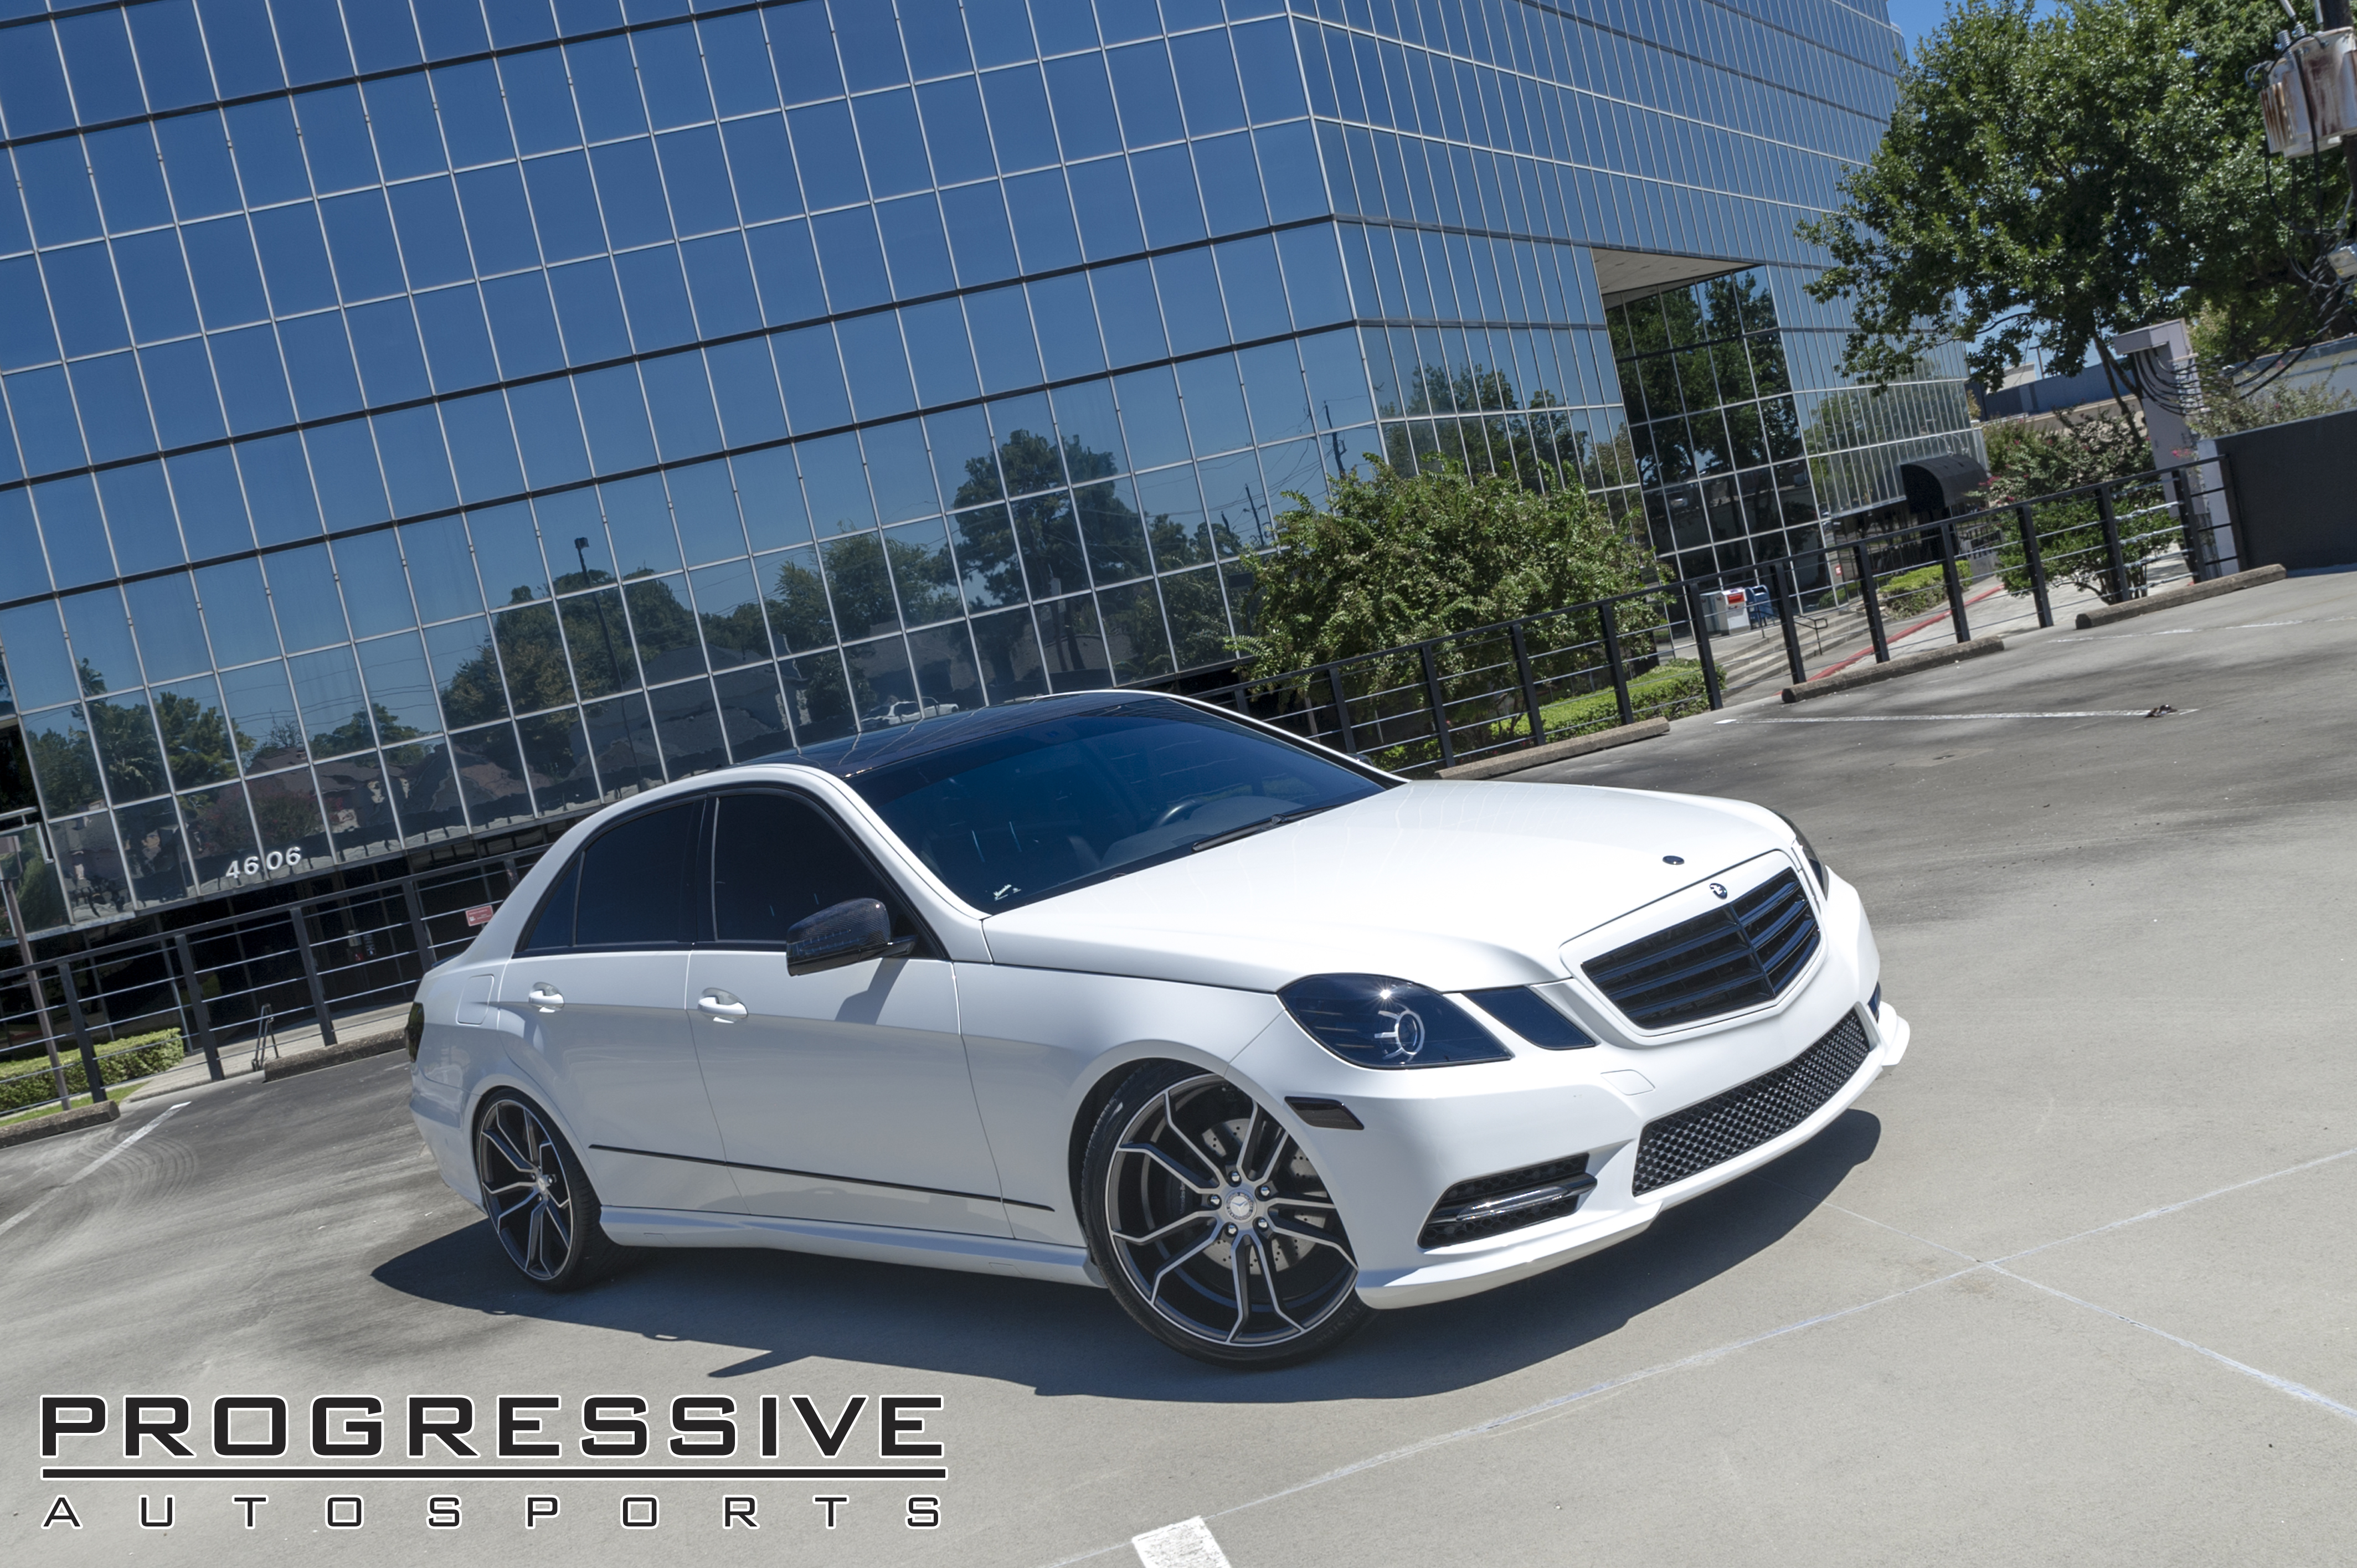 benz mercedes pin pinterest listing car cloudhax